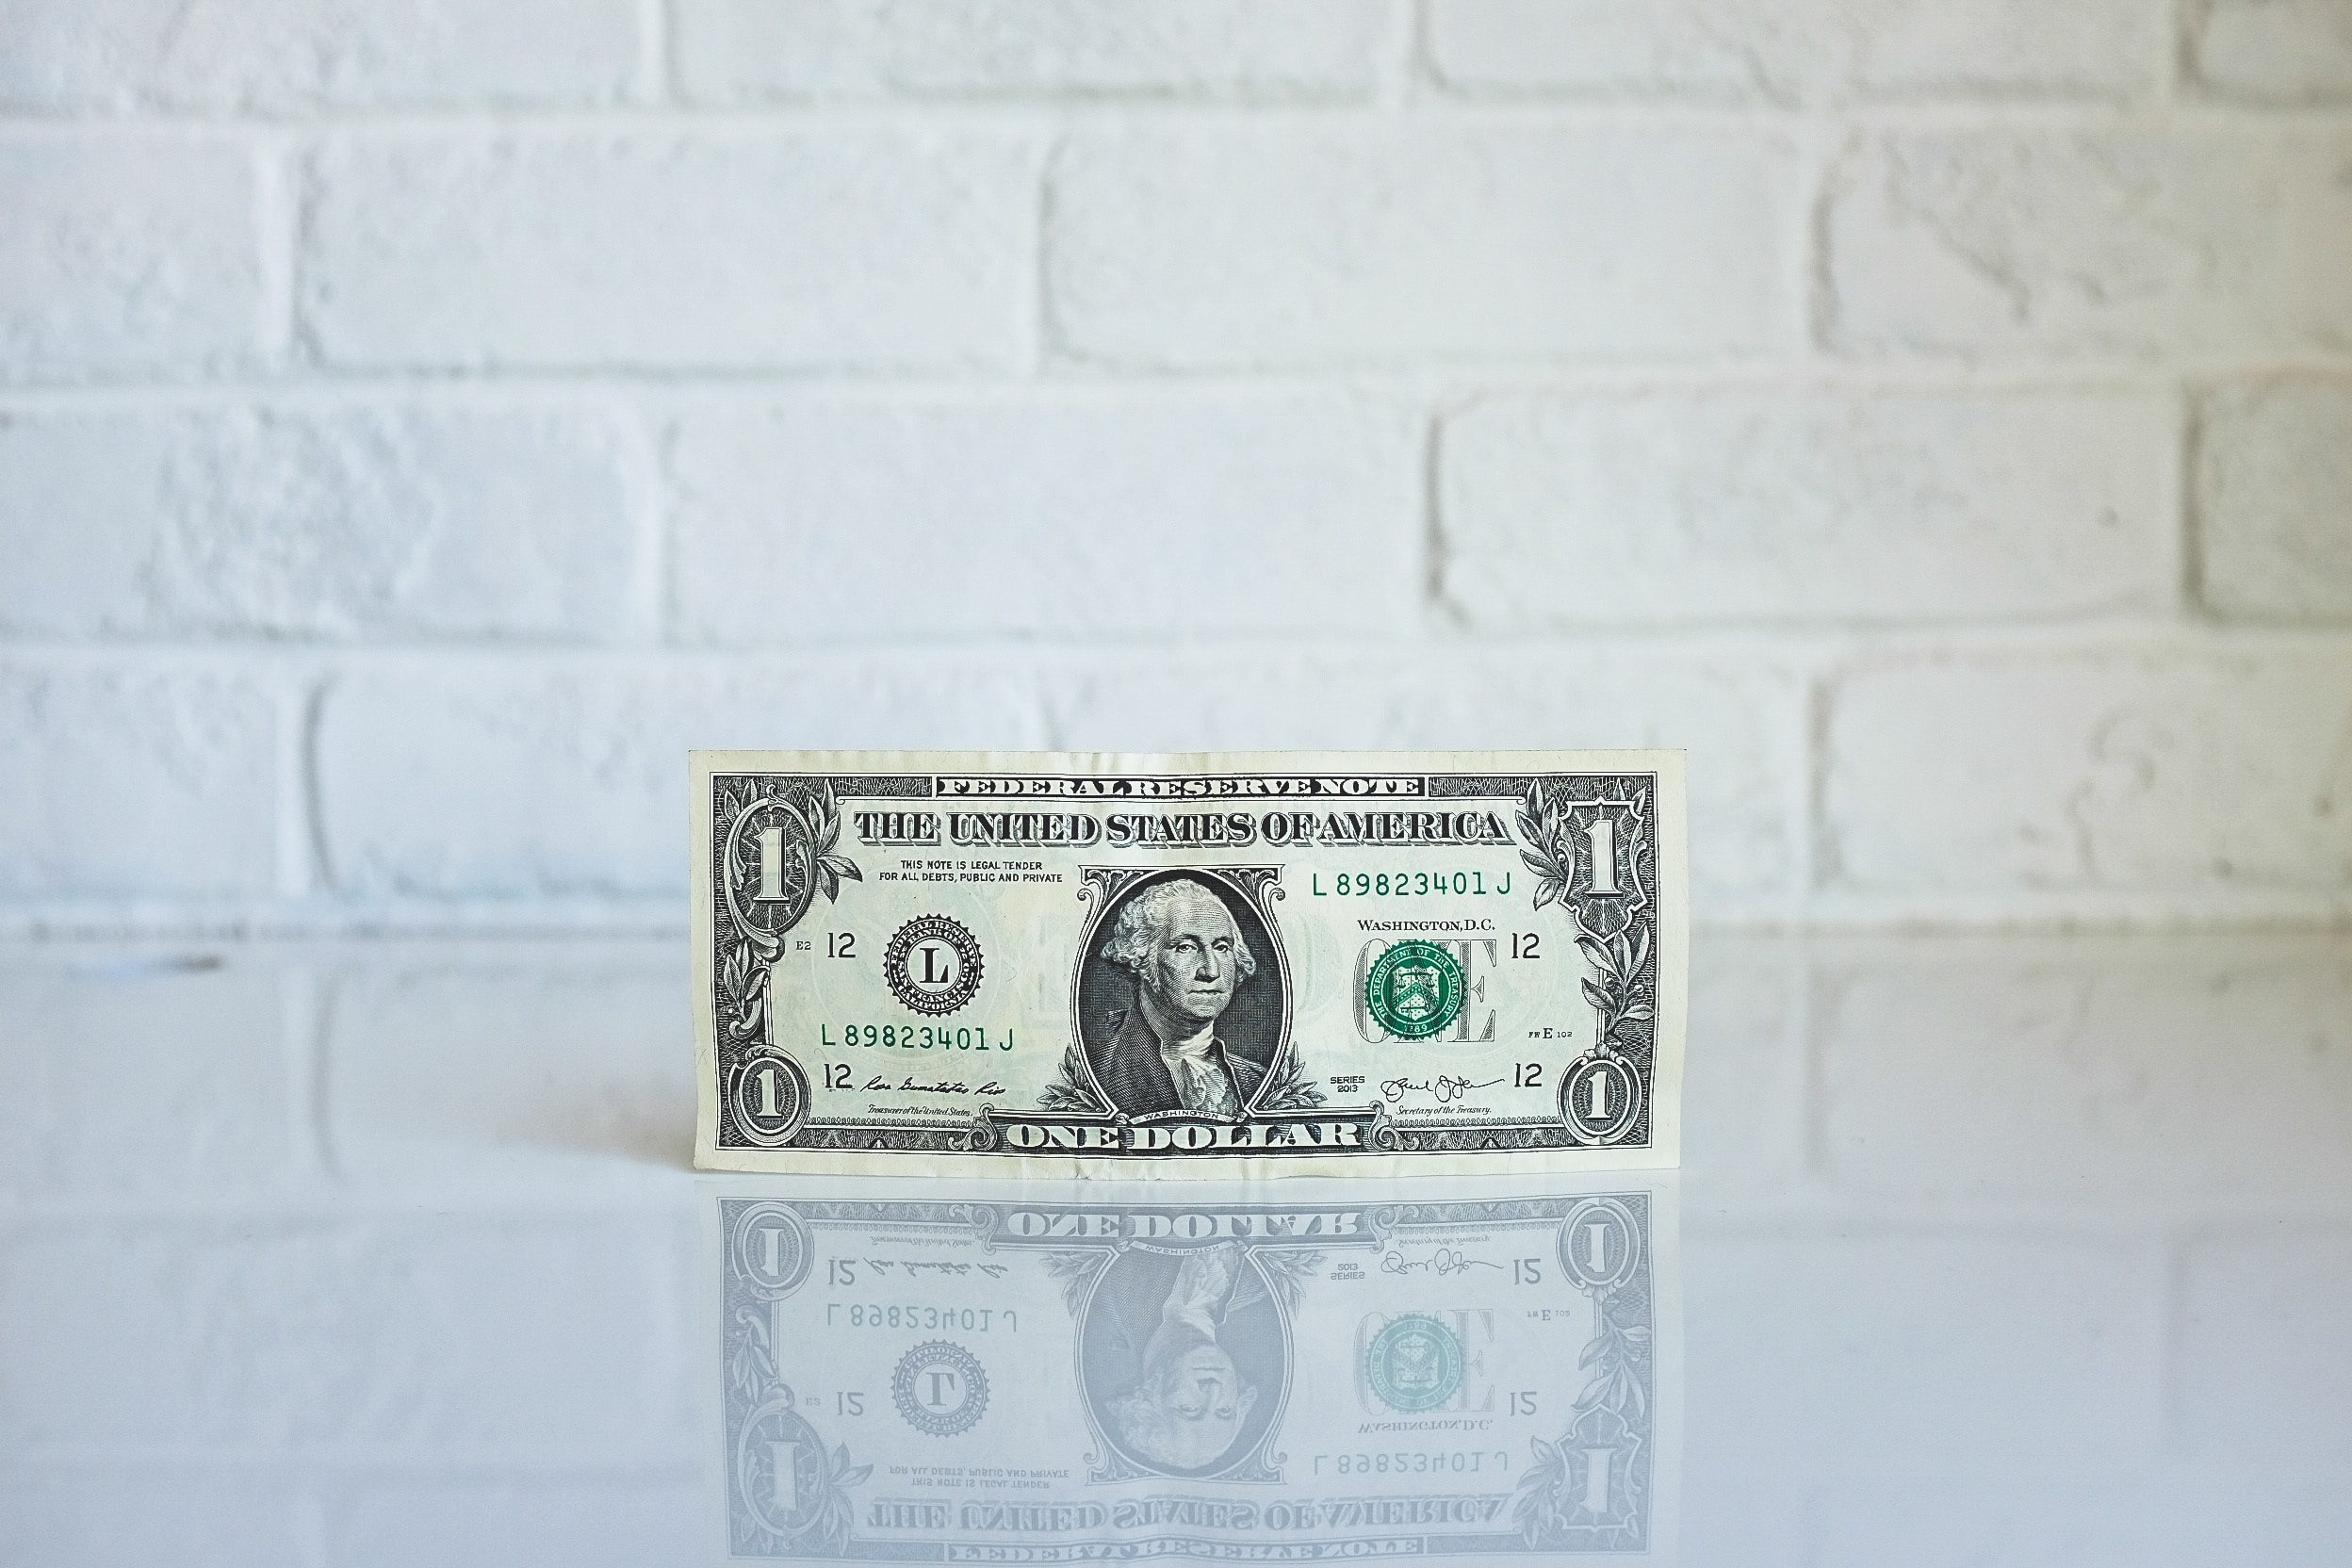 11+ Ways to Save Money on Household Bills and Monthly Outgoings